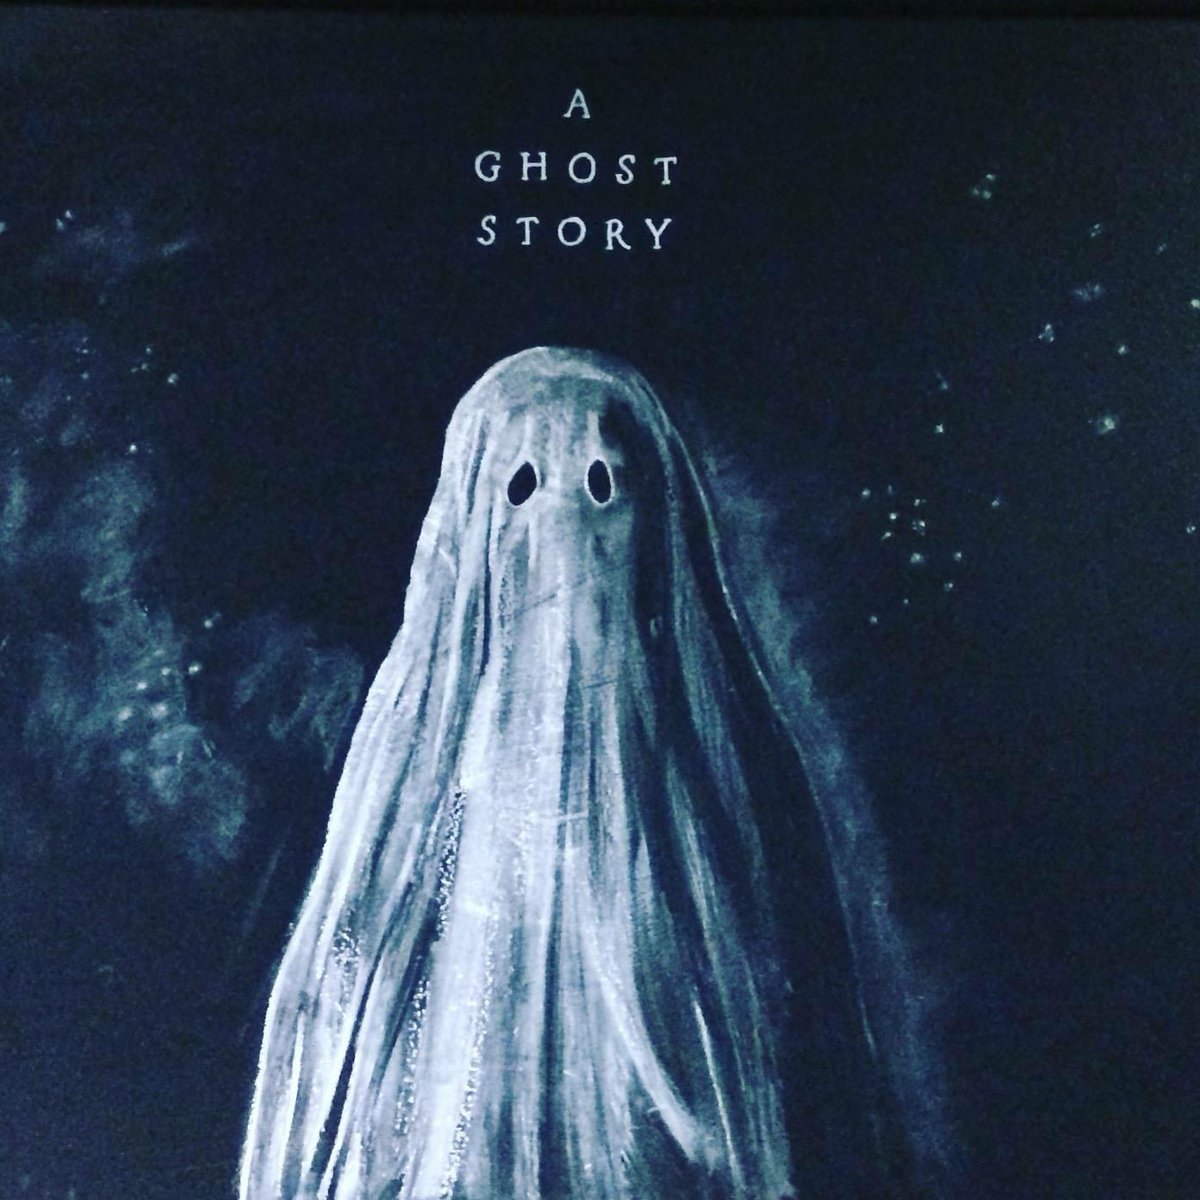 Free videosex ghost story sexual pic